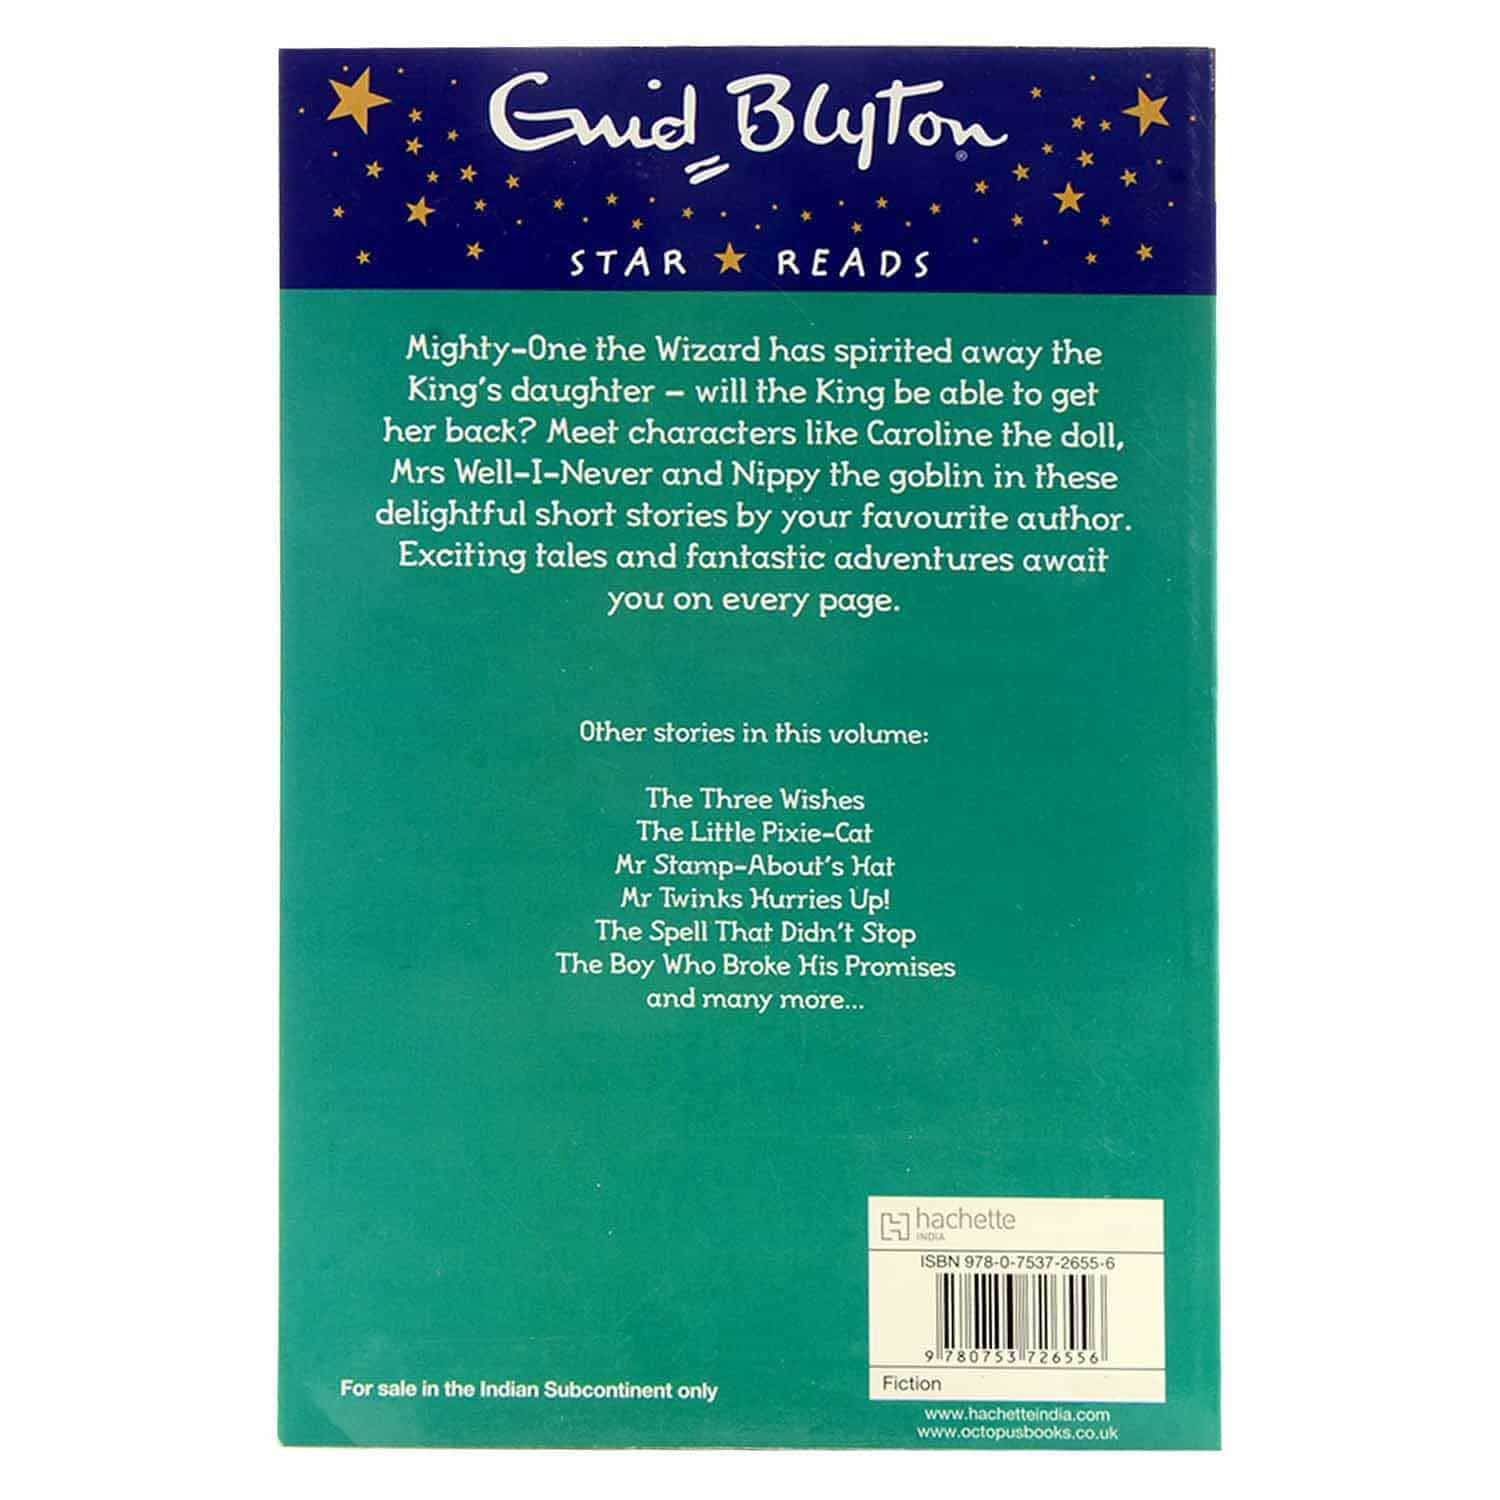 Enid Blyton - Mighty-One the Wizard and Other Stories